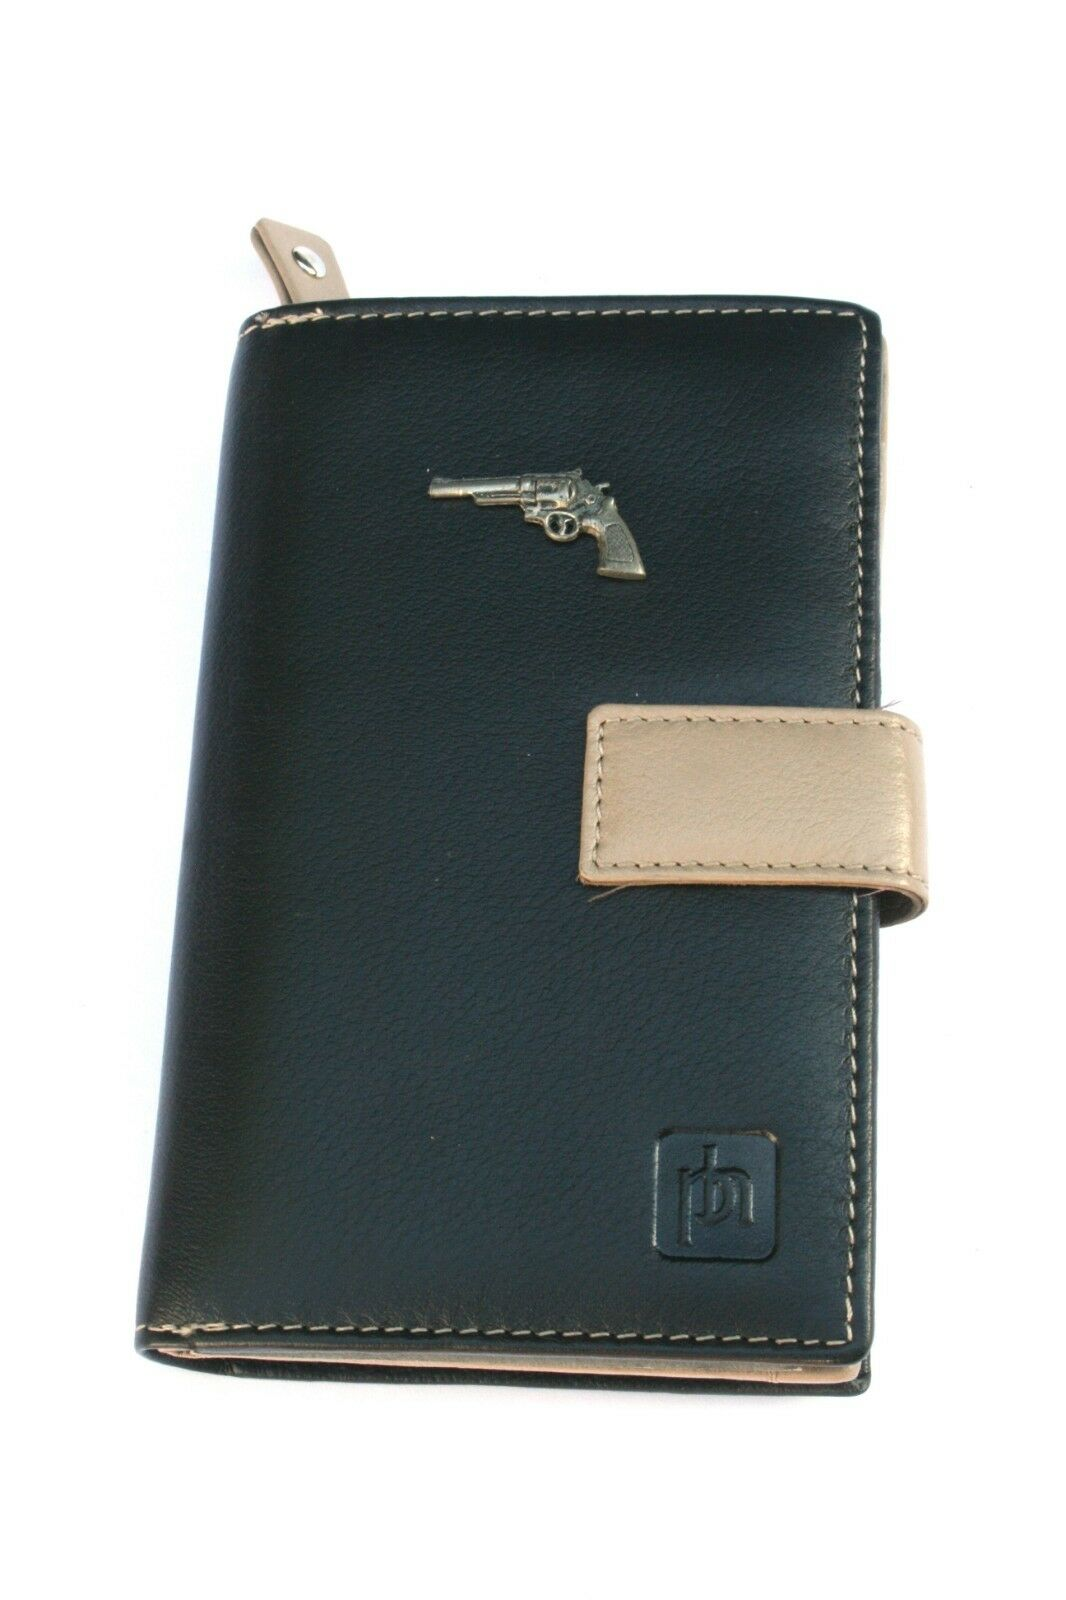 Modern Pistol Design Leather Purse with Zipped Pocket RFID Safe Ladies Gift 280